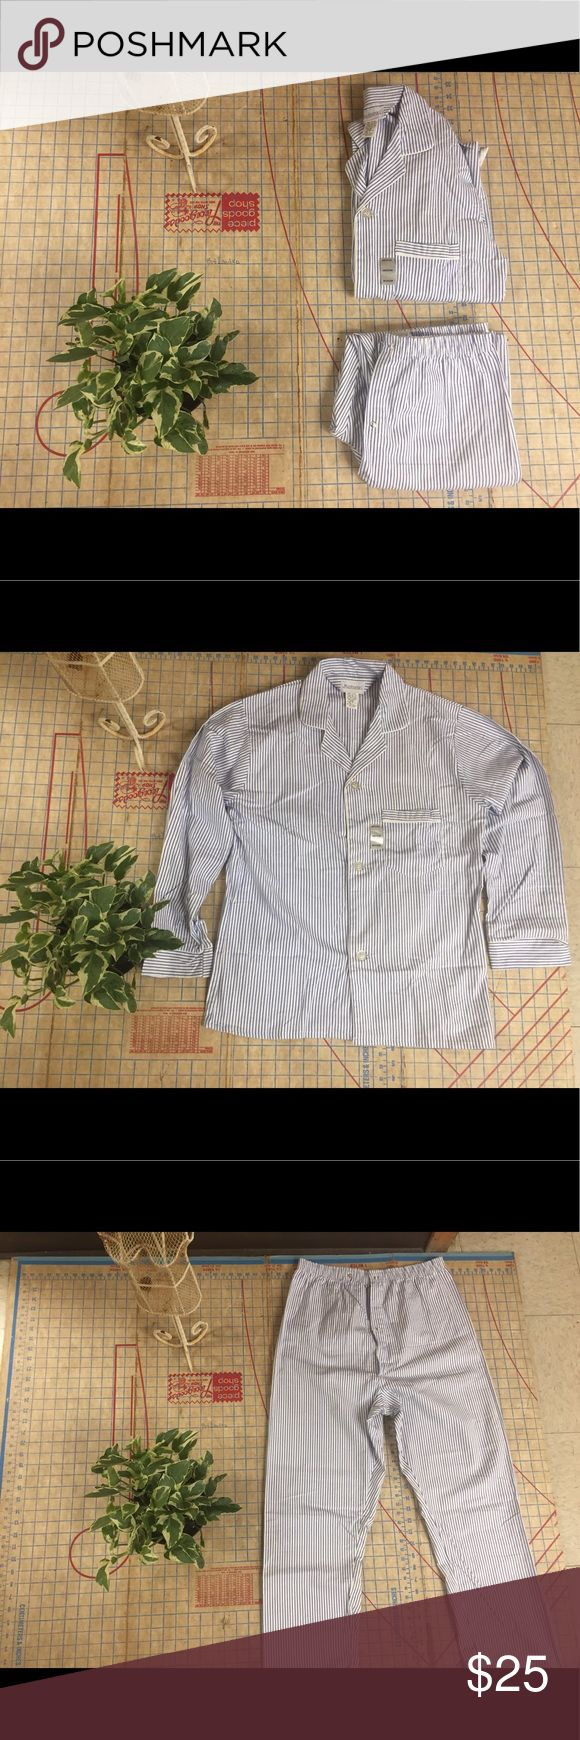 """Manhattan brand retro flannel pajamas size medium NWOT pinstripe flannel pajamas size medium. 100% cotton and so soft. Small blue and white pinstripe. Snap adjusters for pant's waist. Just like 1960s men's pajamas. I would keep but they're just a little too big for me. Shirt measures 29"""" in length and 21"""" across the chest. Pants have an adjustable waist, at their smallest they measure 15"""", Rise is 14"""" and inseam is 25"""". So much fun to wear. Unisex. Manhattan Other"""